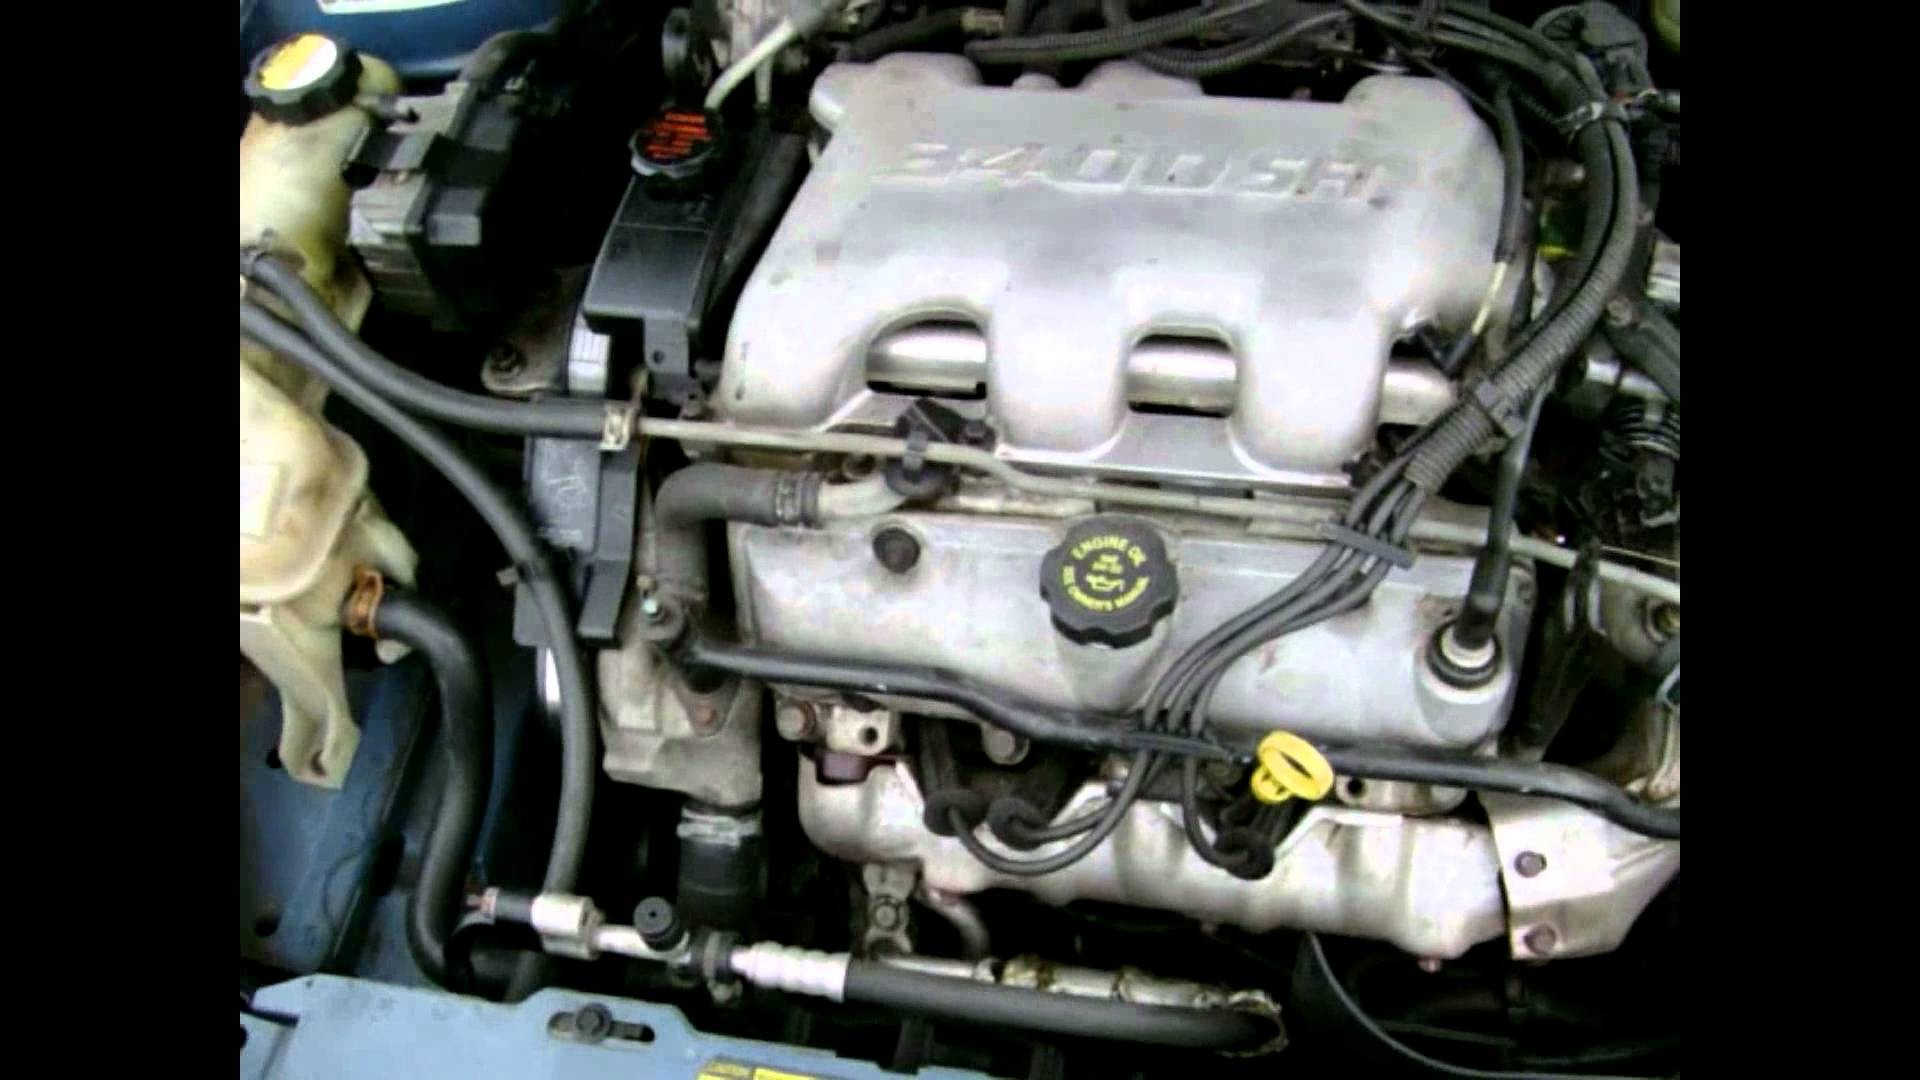 monte carlo 3 4l gm v6 engine diagram electrical work wiring diagram u2022 rh aglabs co 95 Camaro 3.4 Engine Diagram 95 Camaro 3.4 Engine Diagram